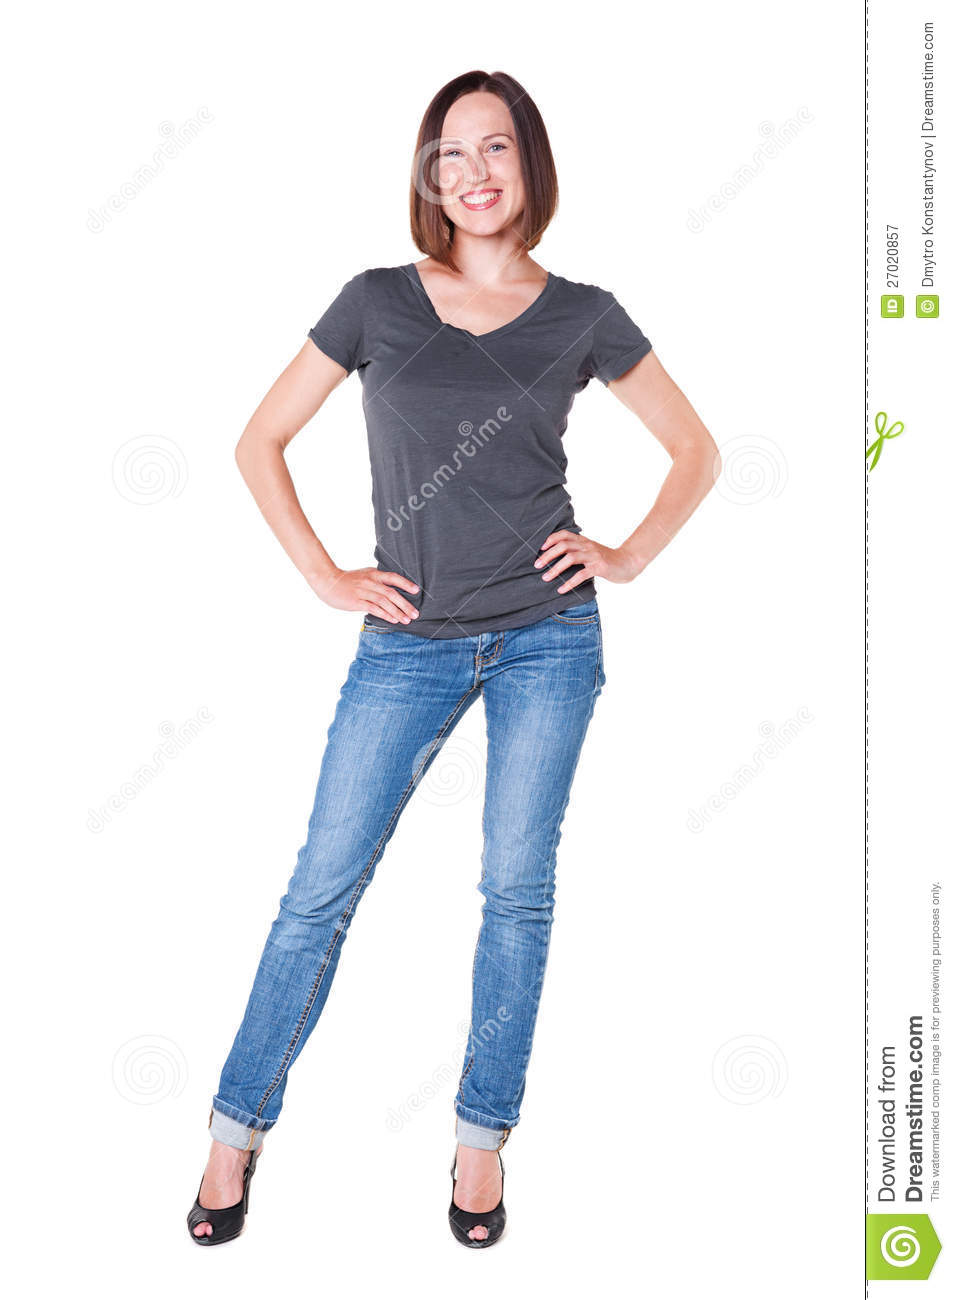 Smiley Girl In Grey T-shirt And Blue Jeans Stock Image - Image 27020857